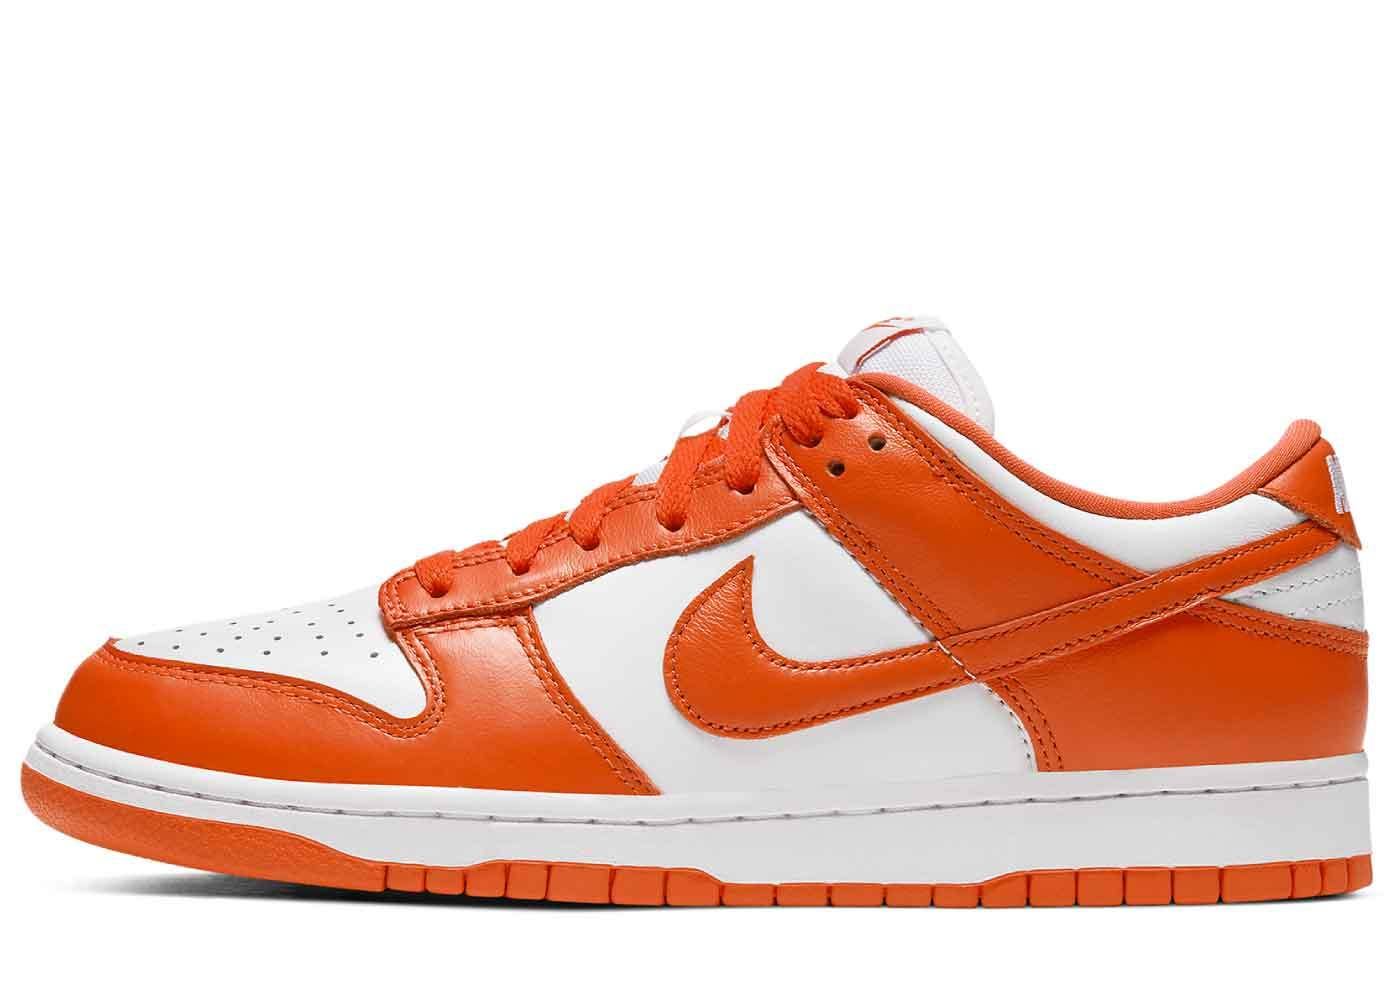 Nike Dunk Low Syracuseの写真